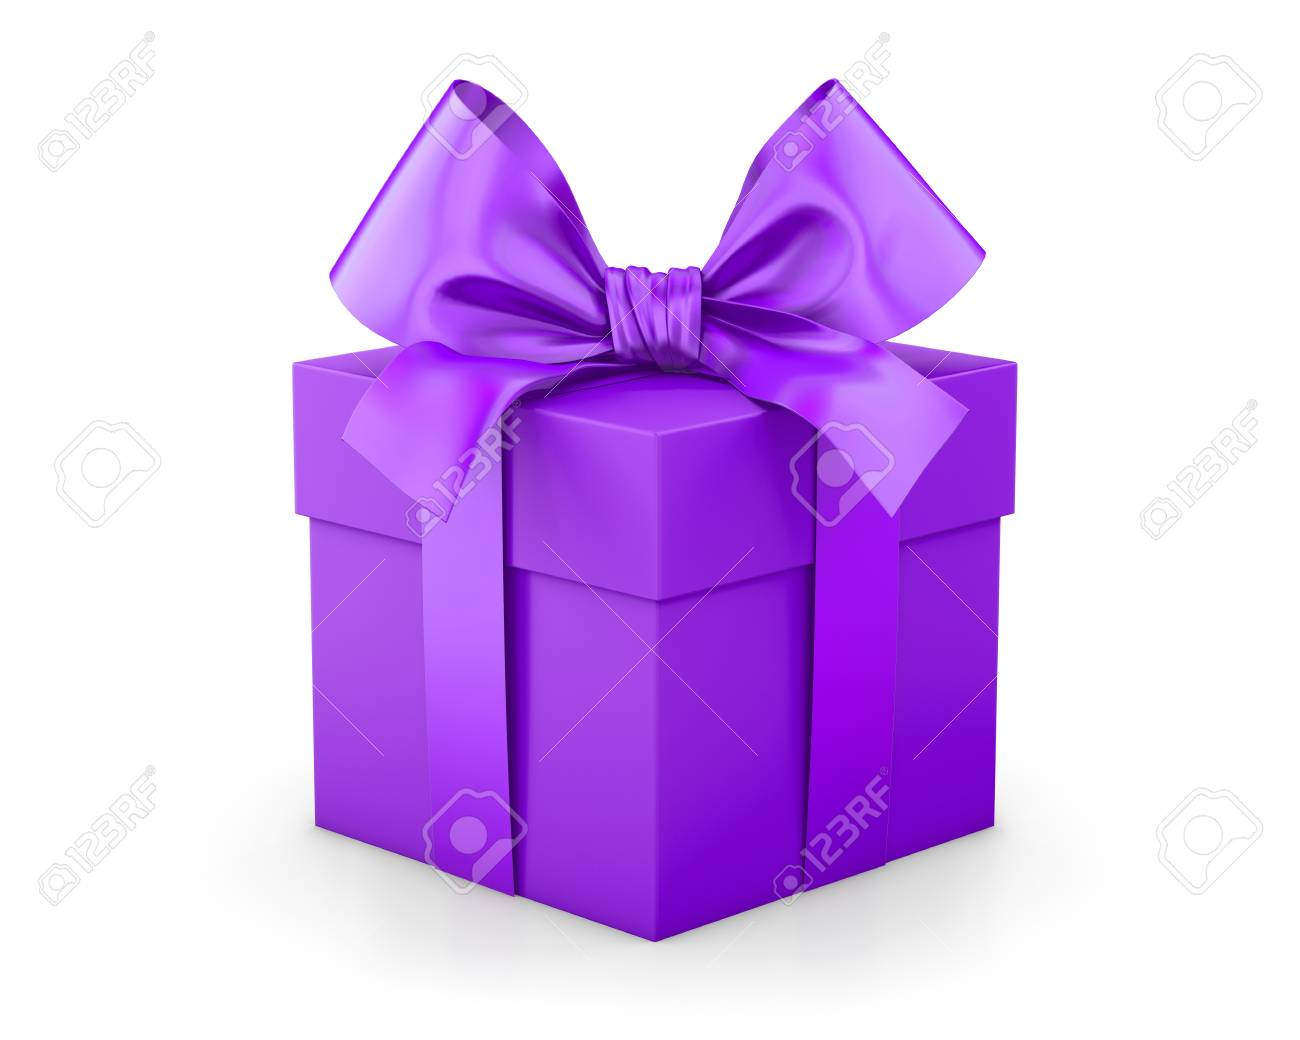 Purple gift box for Christmas New Yearu0027s Day 3d rendering Stock Photo - 73551530  sc 1 st  123RF.com & Purple Gift Box For Christmas New Yearu0027s Day 3d Rendering Stock ...